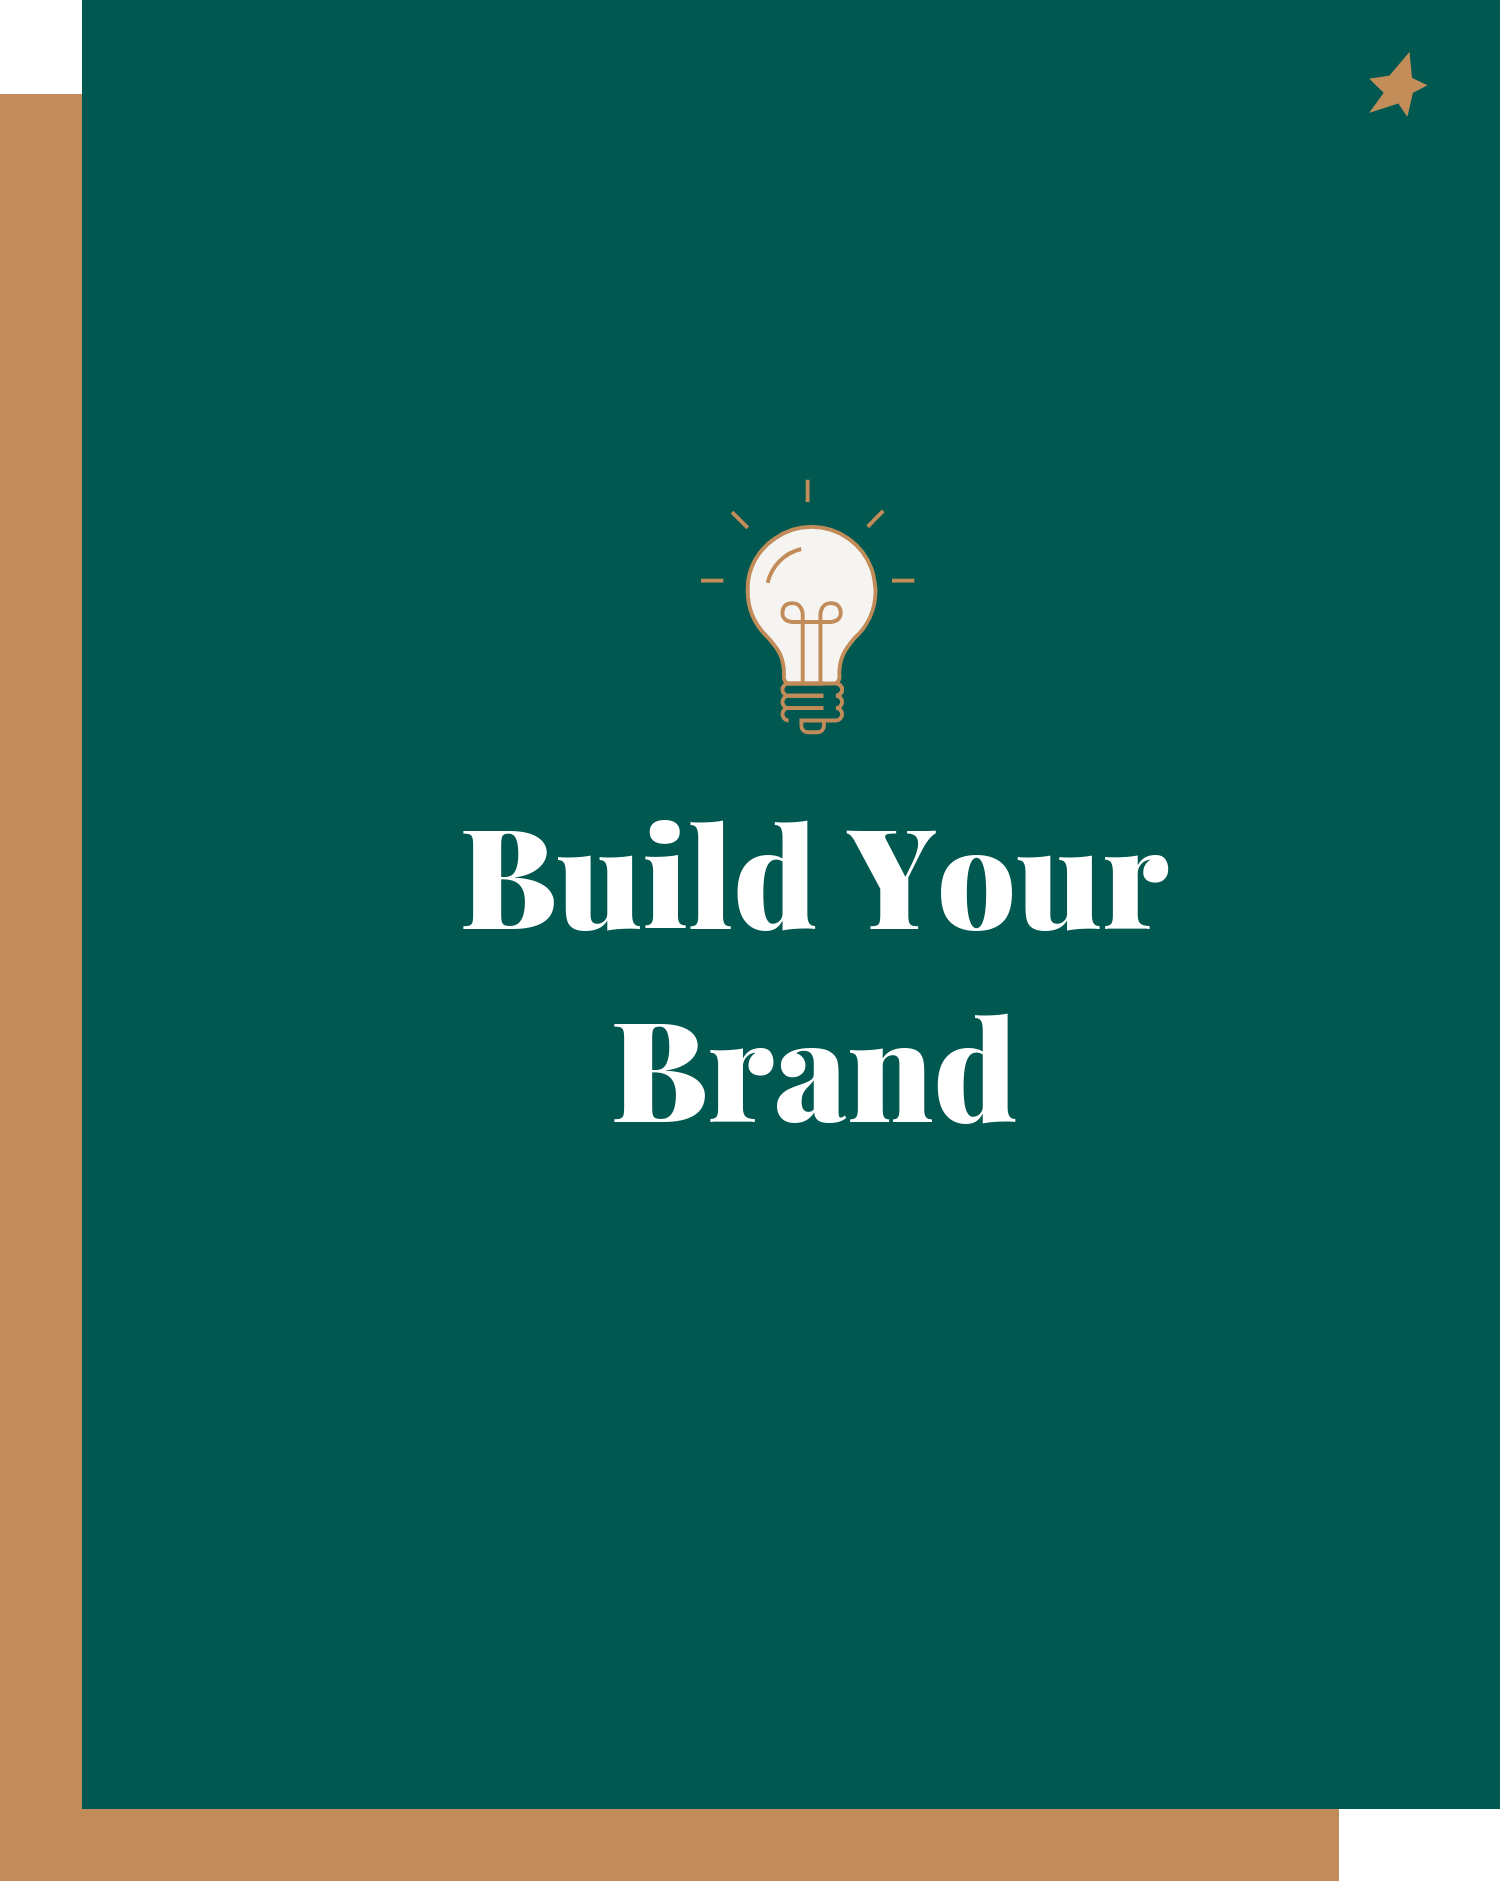 Build Your Brand.png